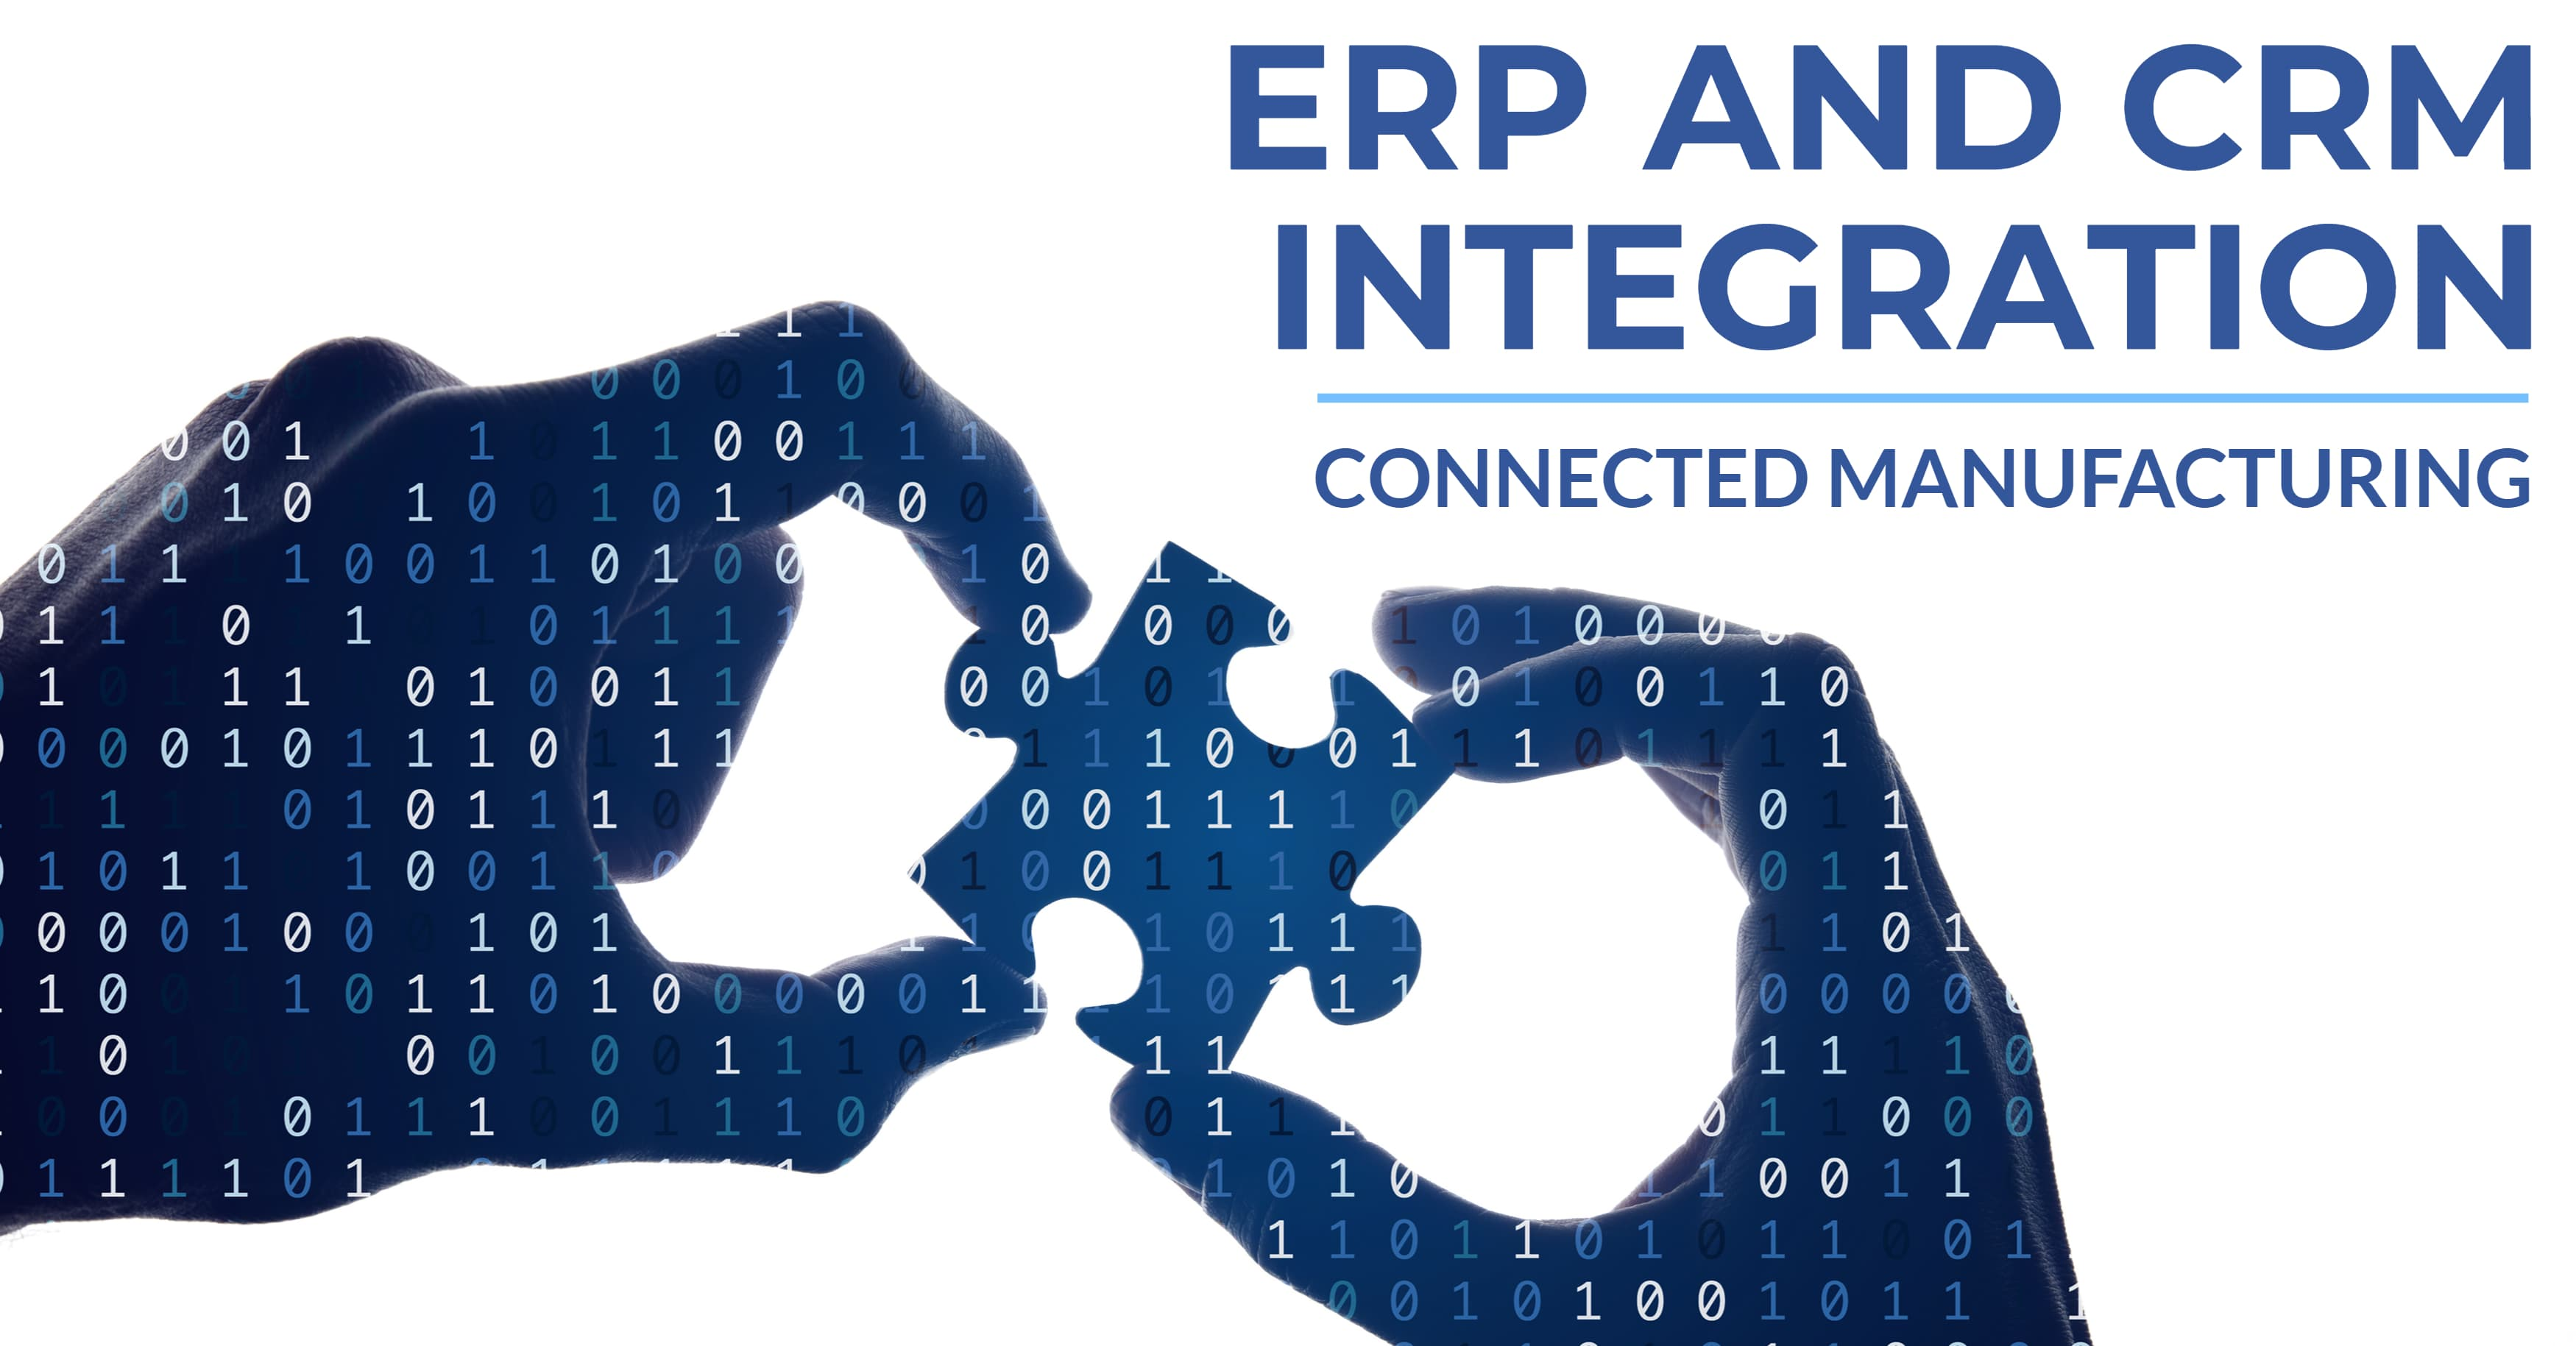 ERP and CRM Integration for Connected Manufacturing